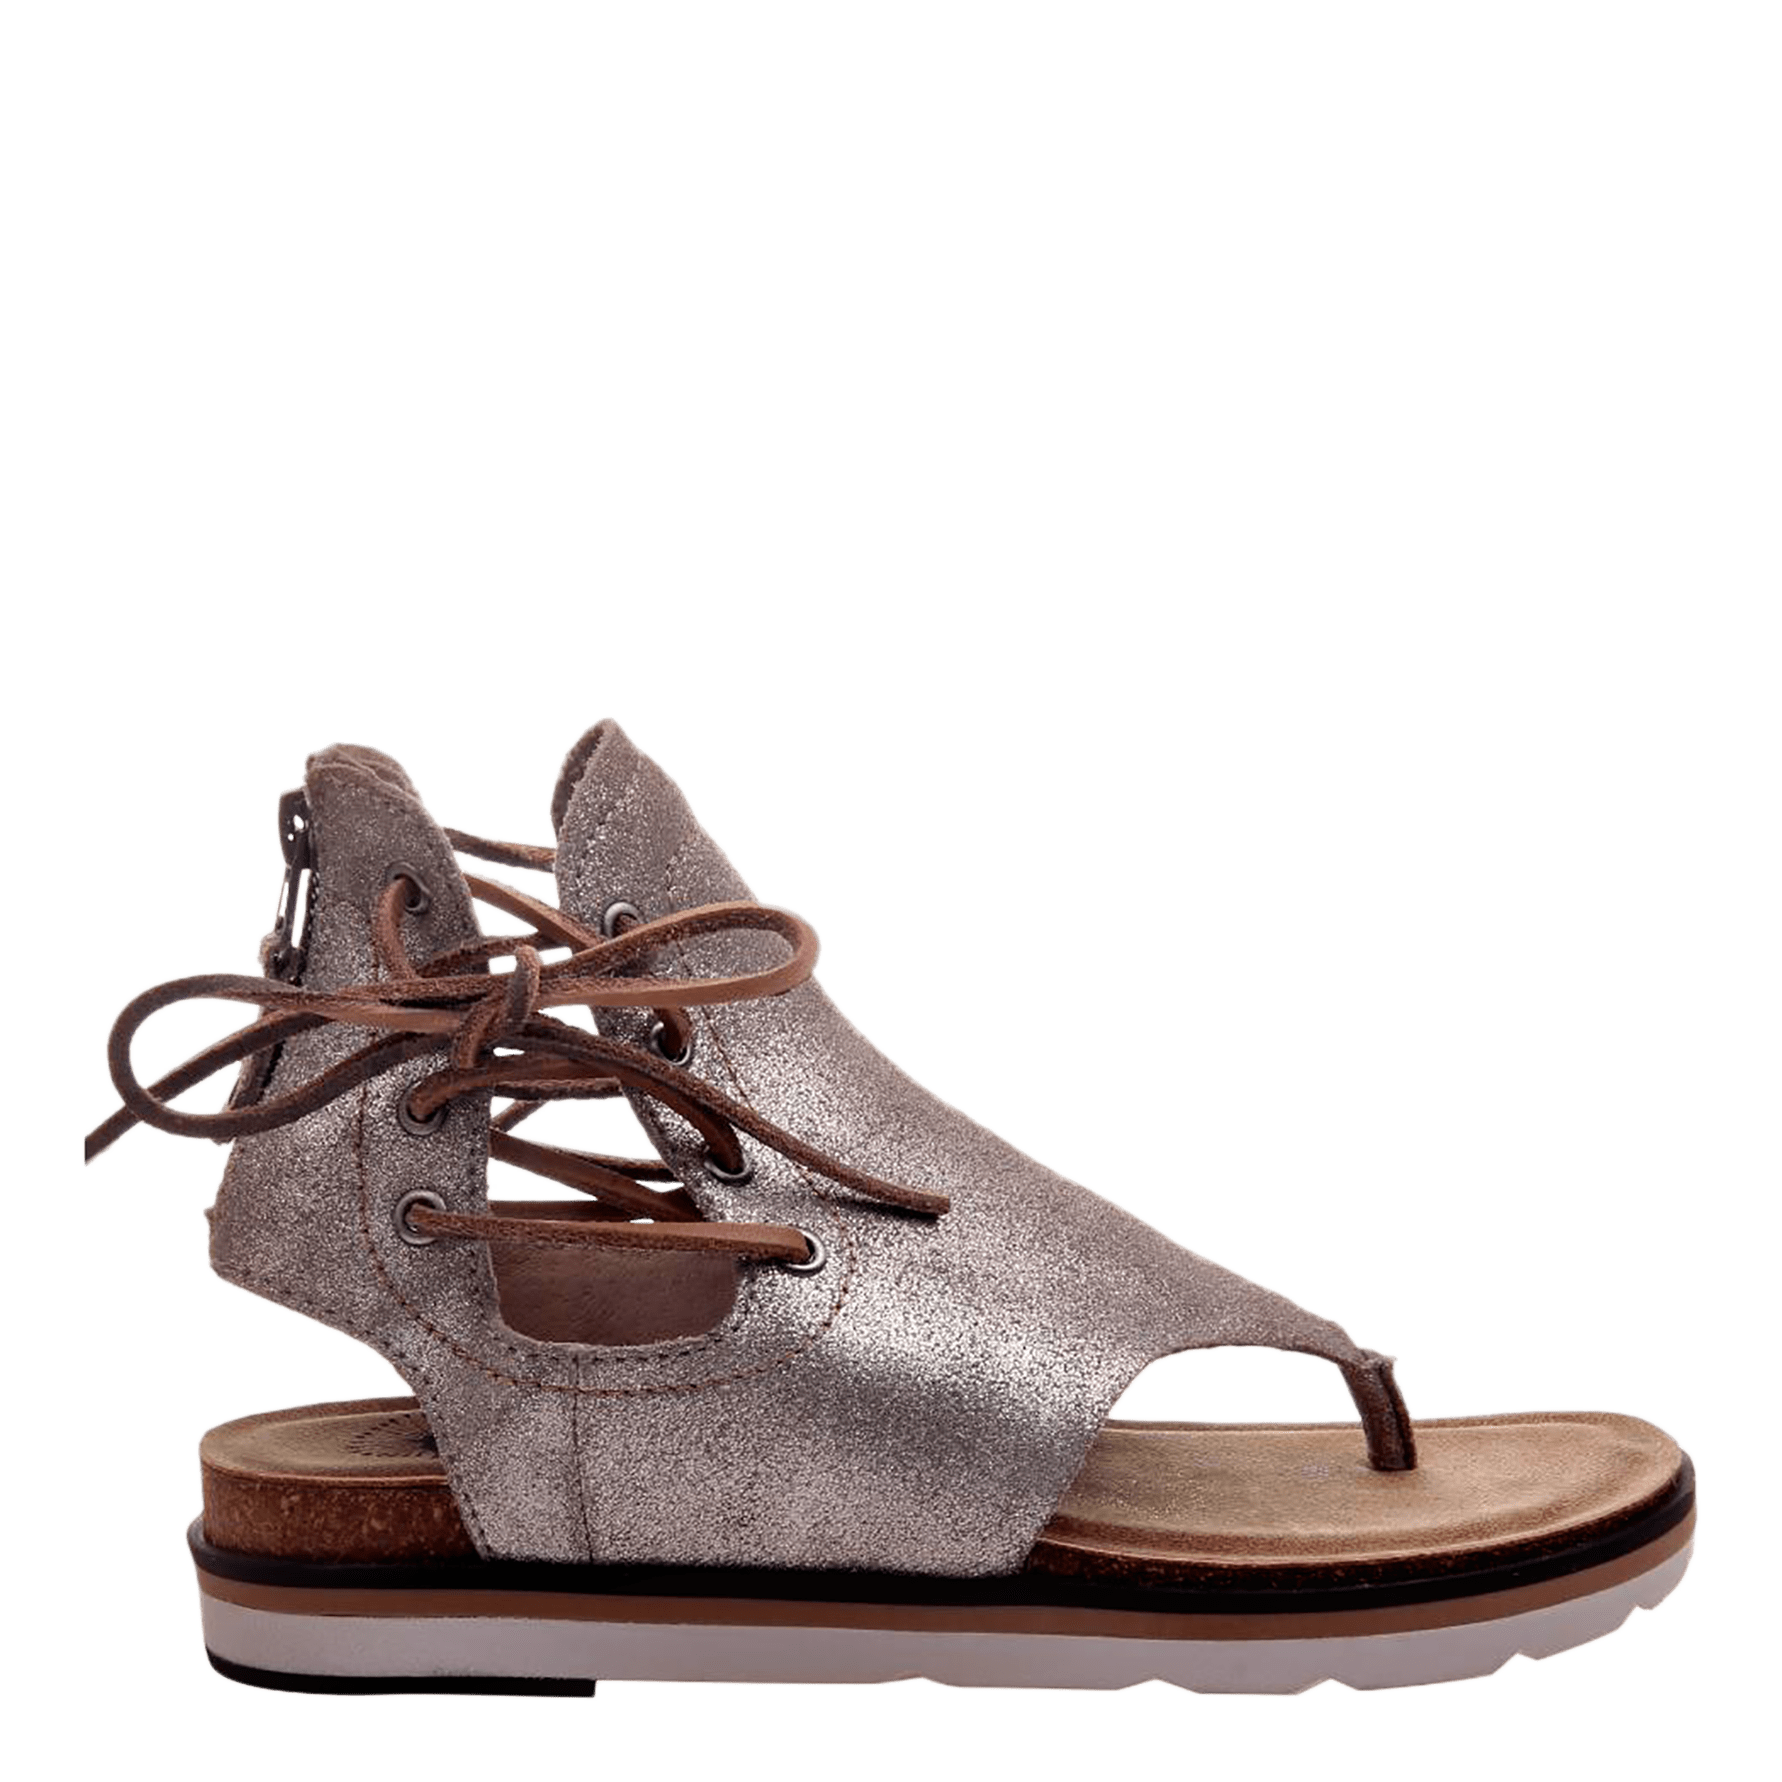 b43aa46118a Womens sandal locate in grey silver side view